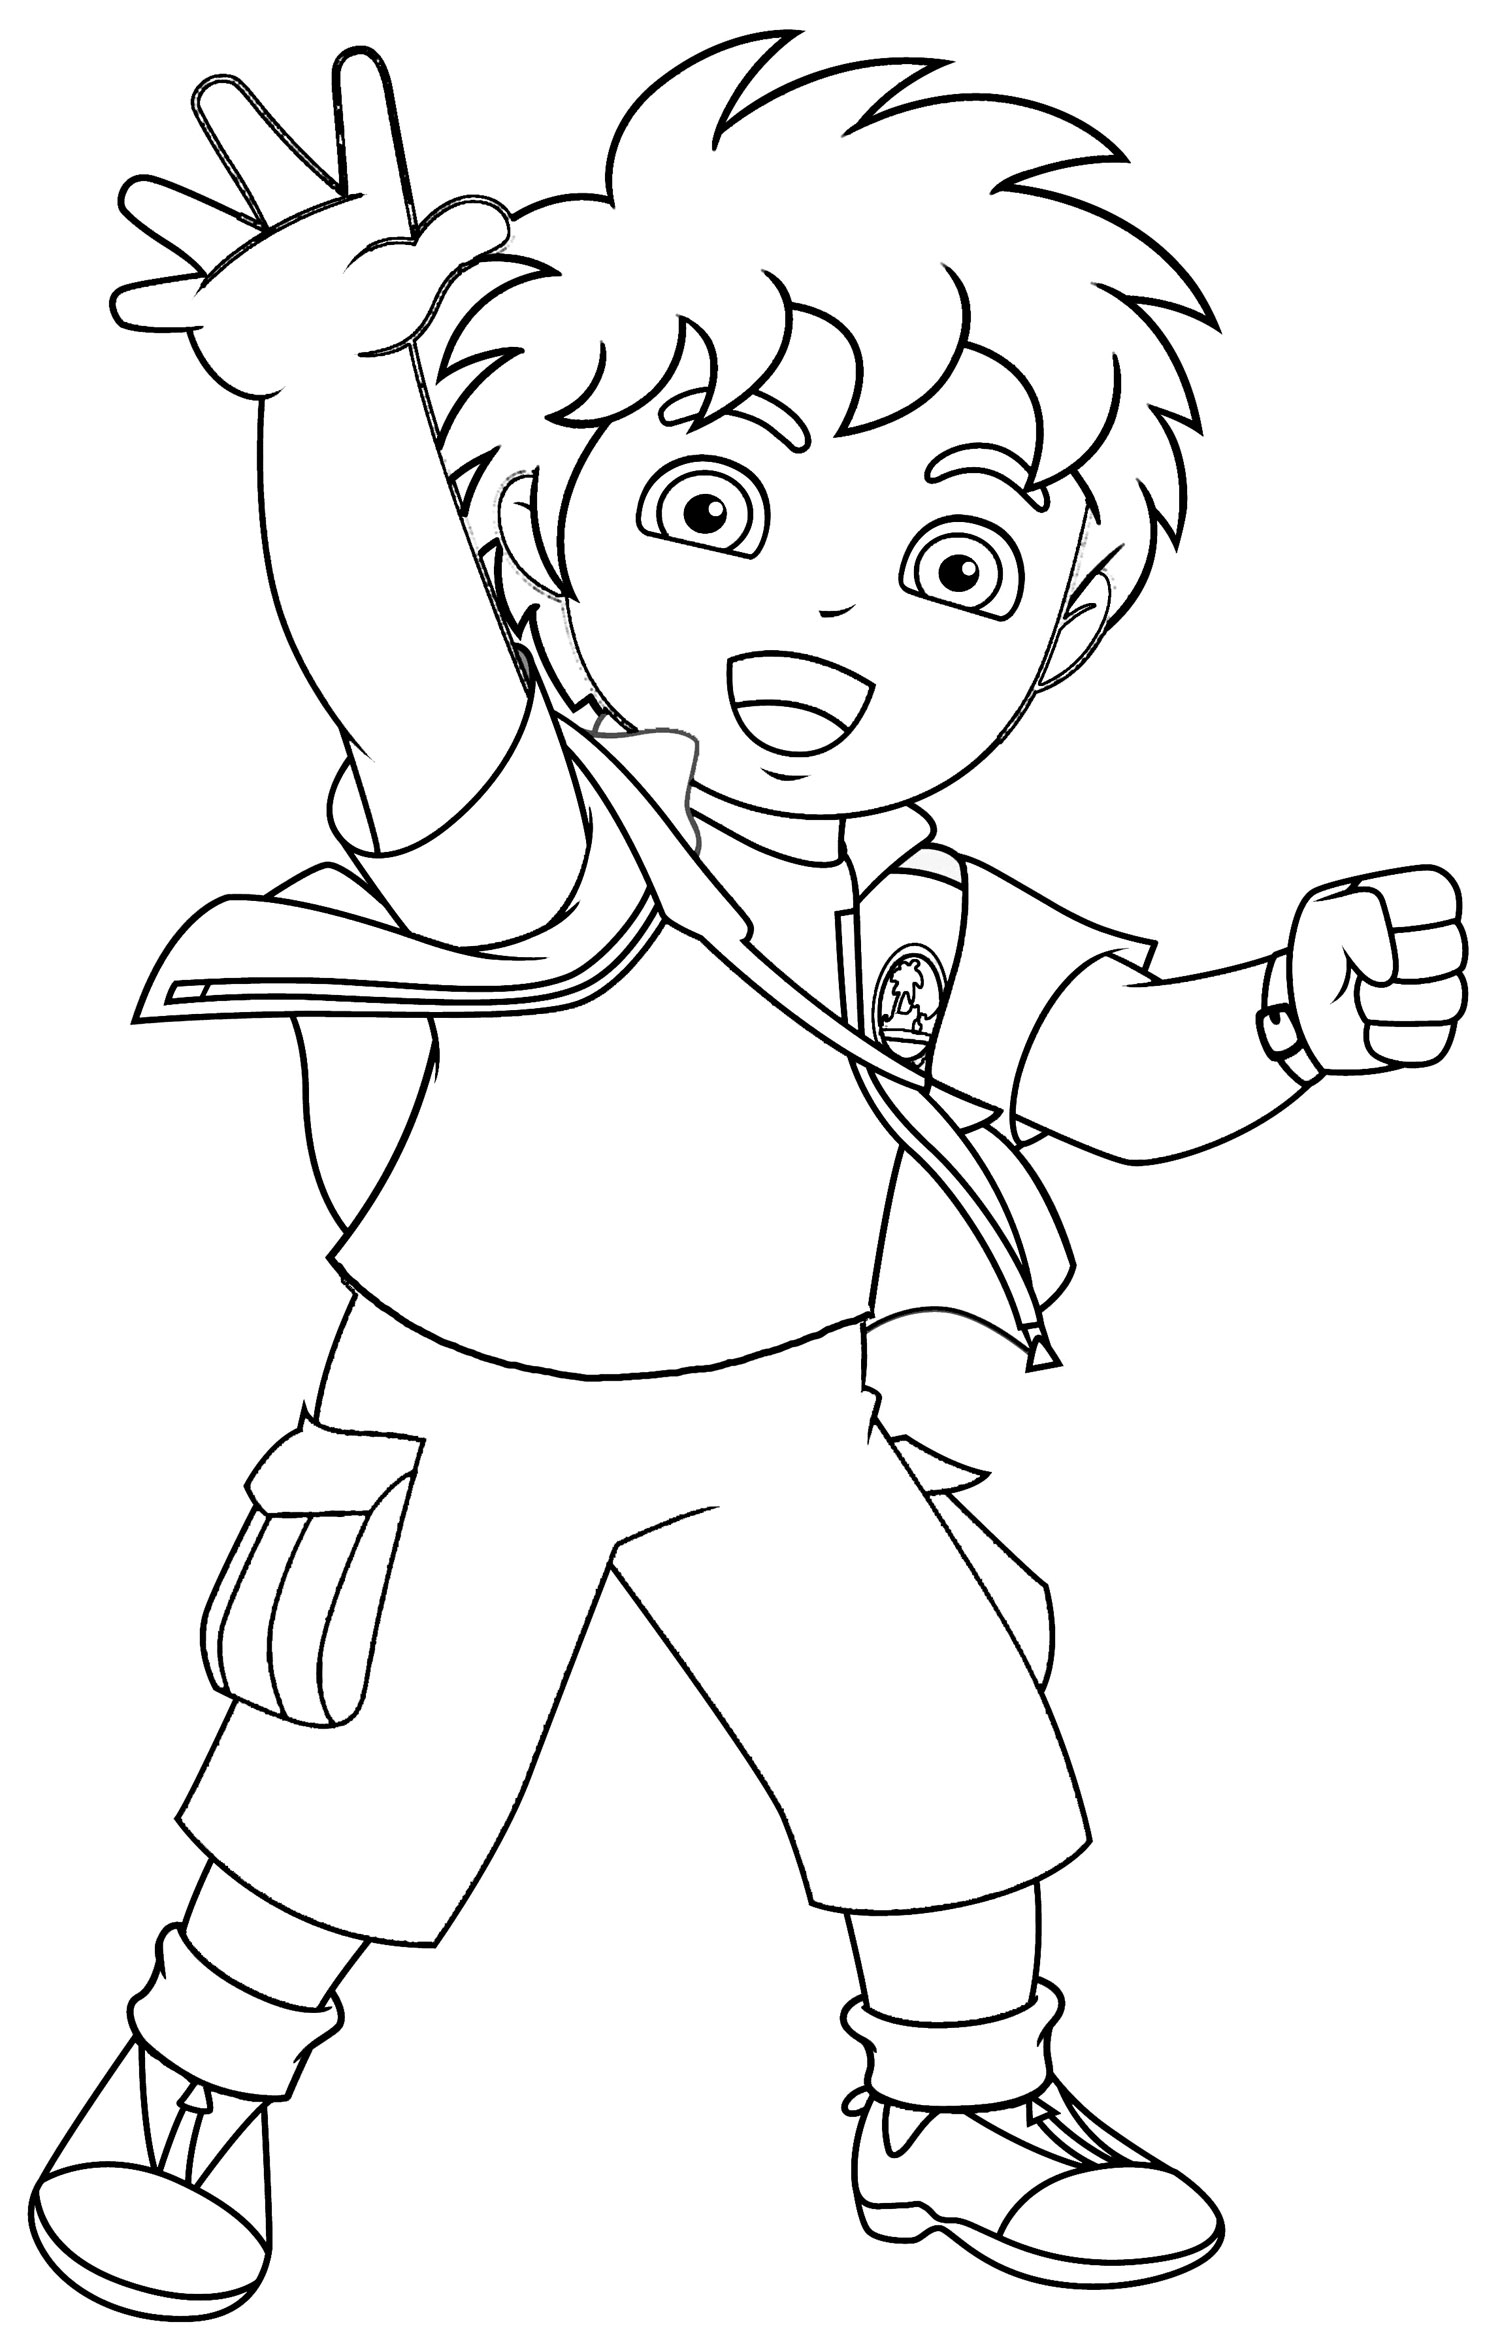 diego coloring pages printable - Coloring Pictures Of Children